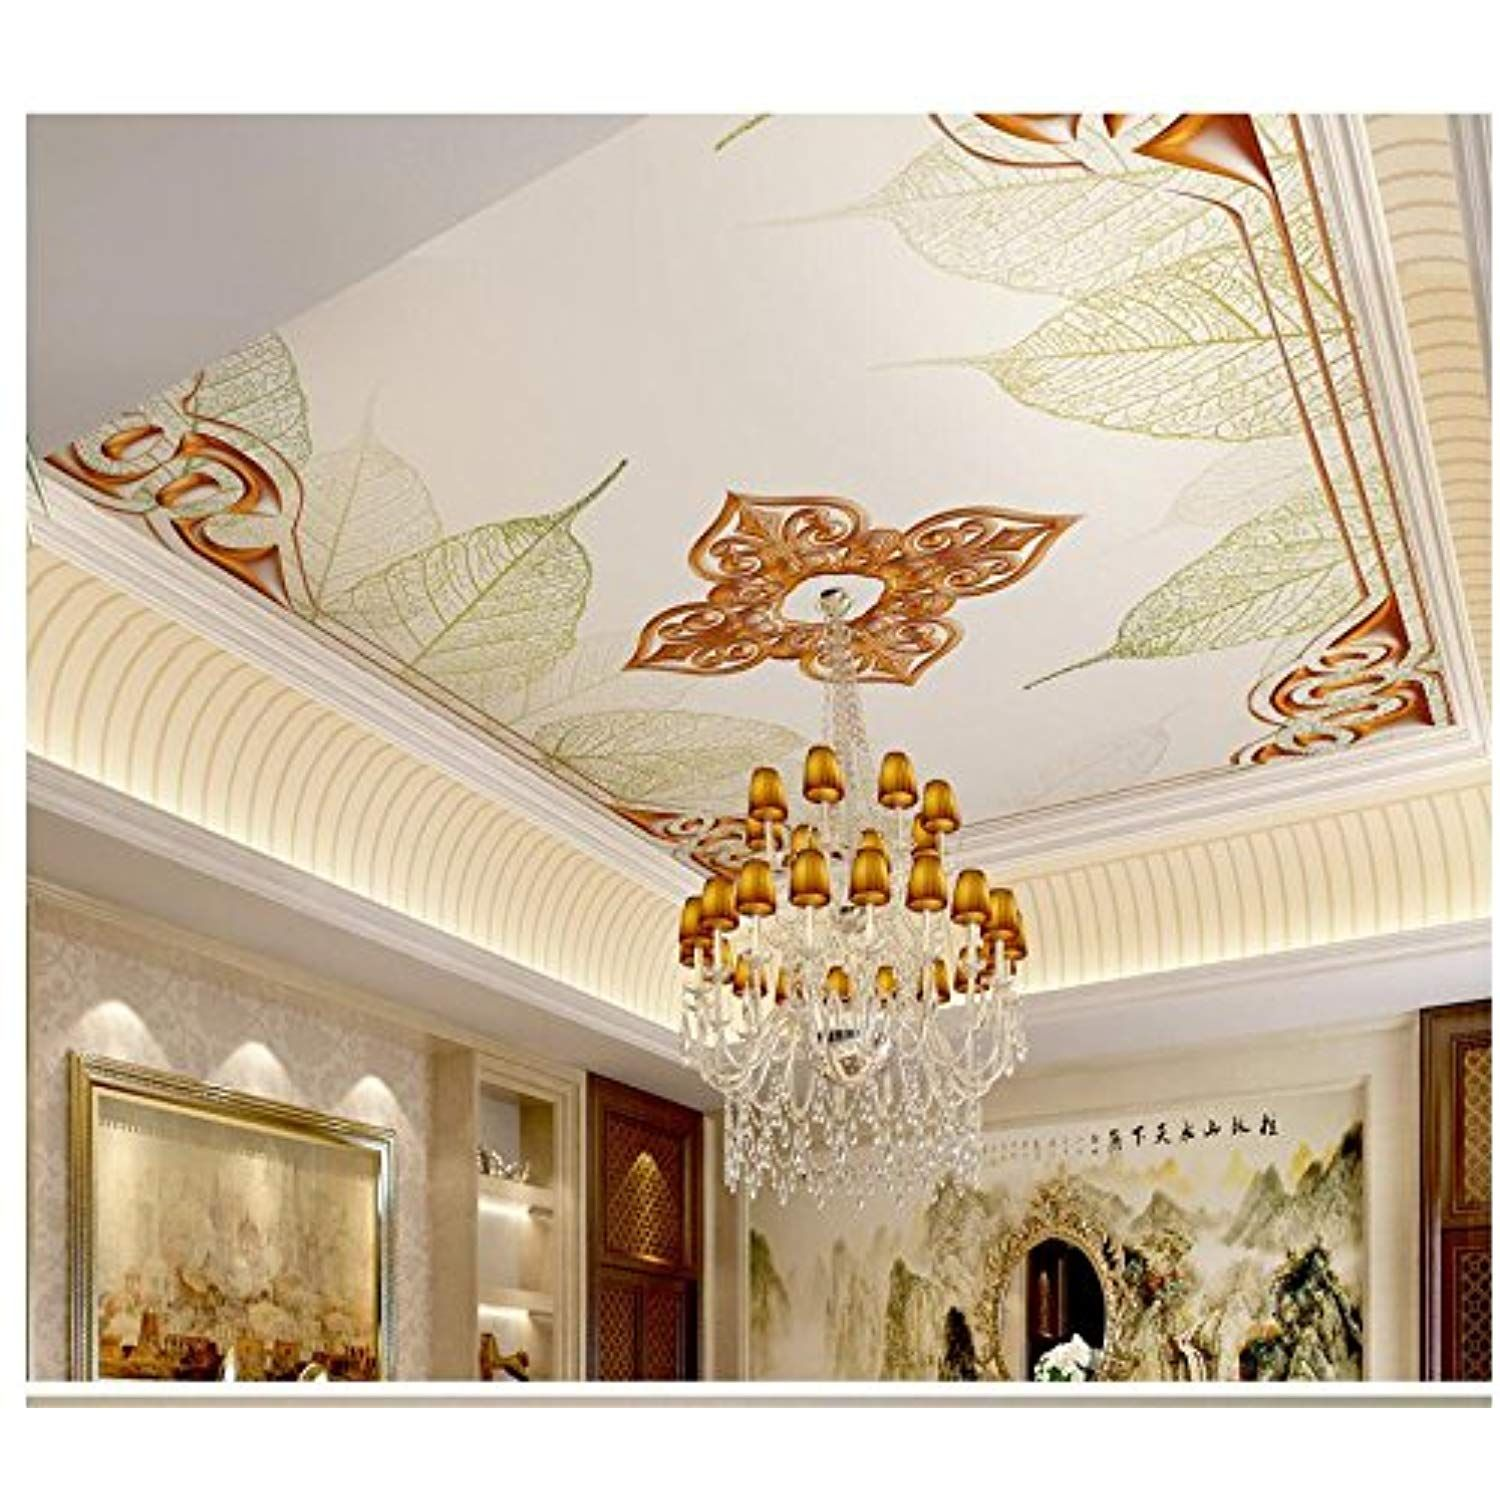 3d Wallpaper Mural Ceiling Silk Cloth A 3d Three Dimensional Golden Border Embossed Leaves Ceiling Ceiling Walla 3d Wallpaper Mural House Mural Mural Ceiling 3d wallpaper designs for ceiling